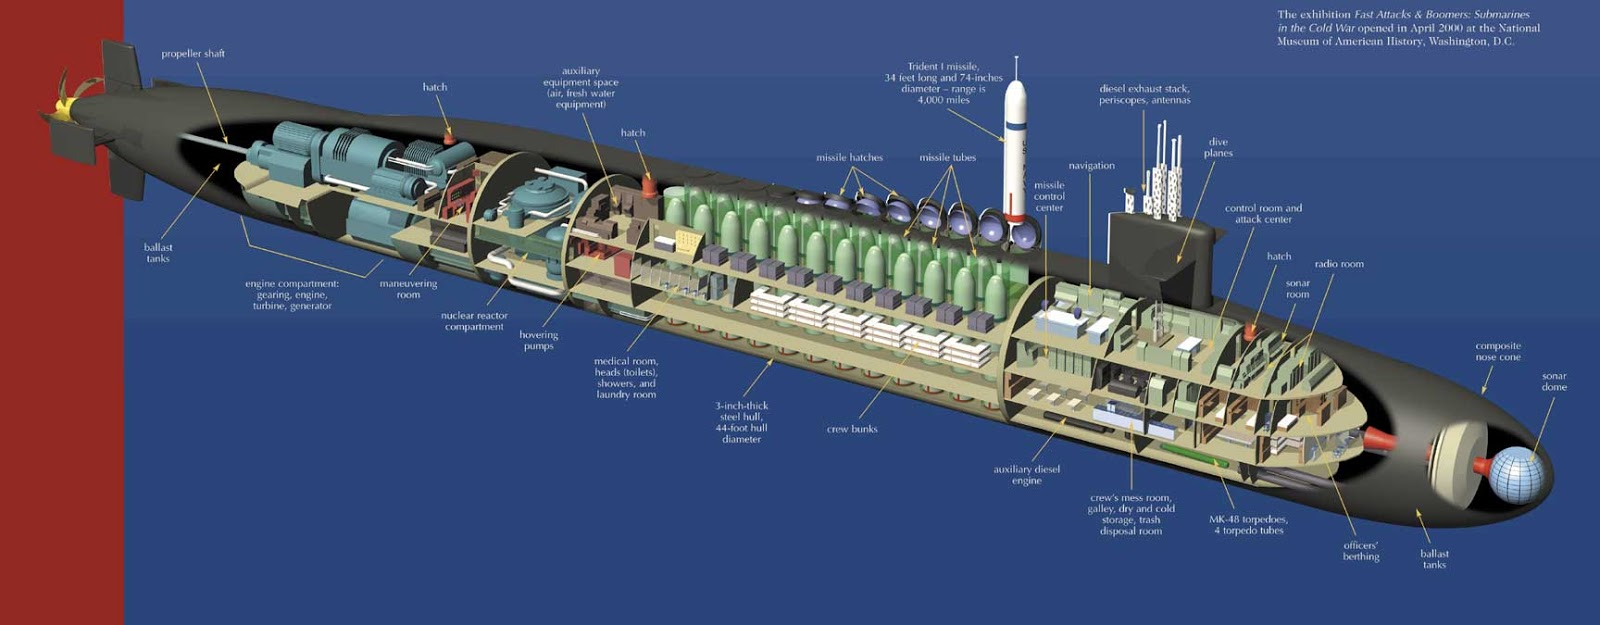 diagram of nuclear sub standard electrical wiring diagramsubmarine matters woman in us navy submarines!diagram of nuclear sub 7